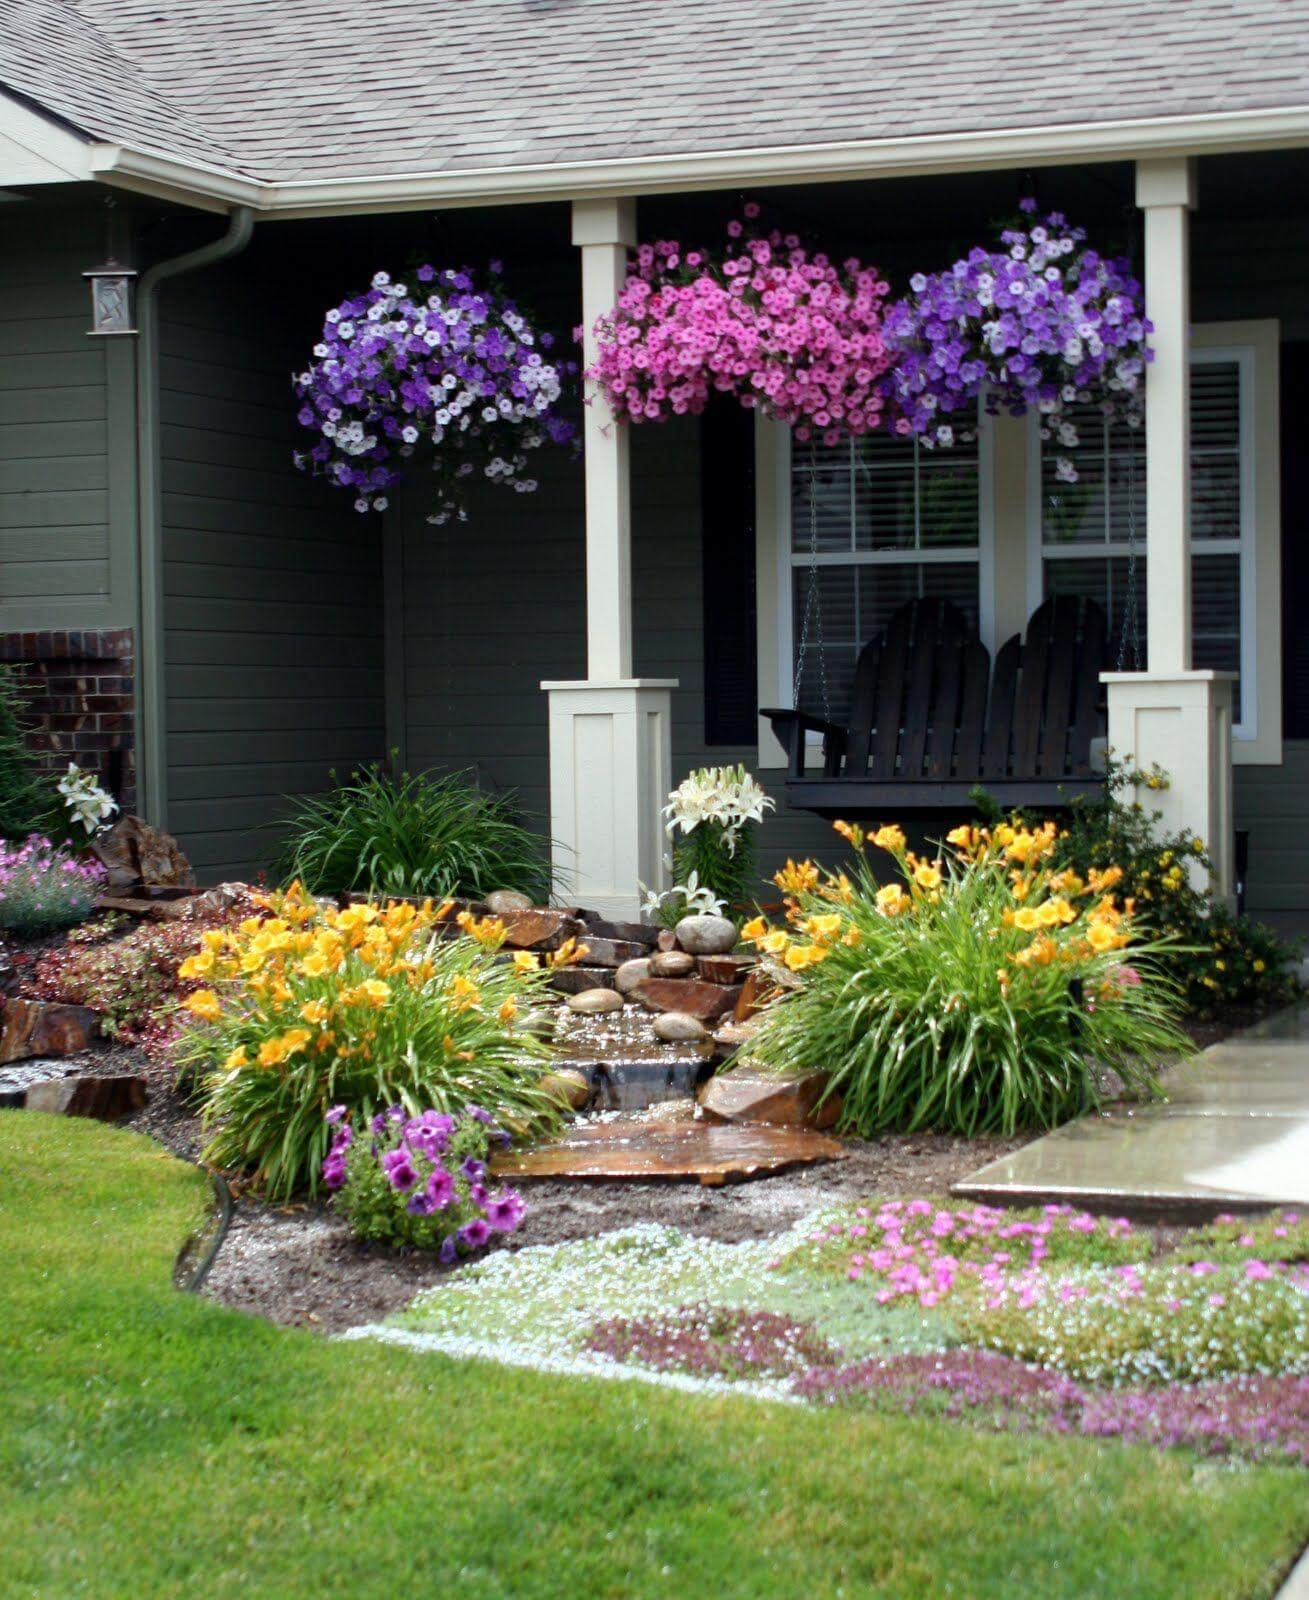 Chic Garden Designs Petunias Front Yard Landscaping Ideas Porch Full 2018 Landscape Pics Front Yard outdoor Landscaping Pics Front Yard